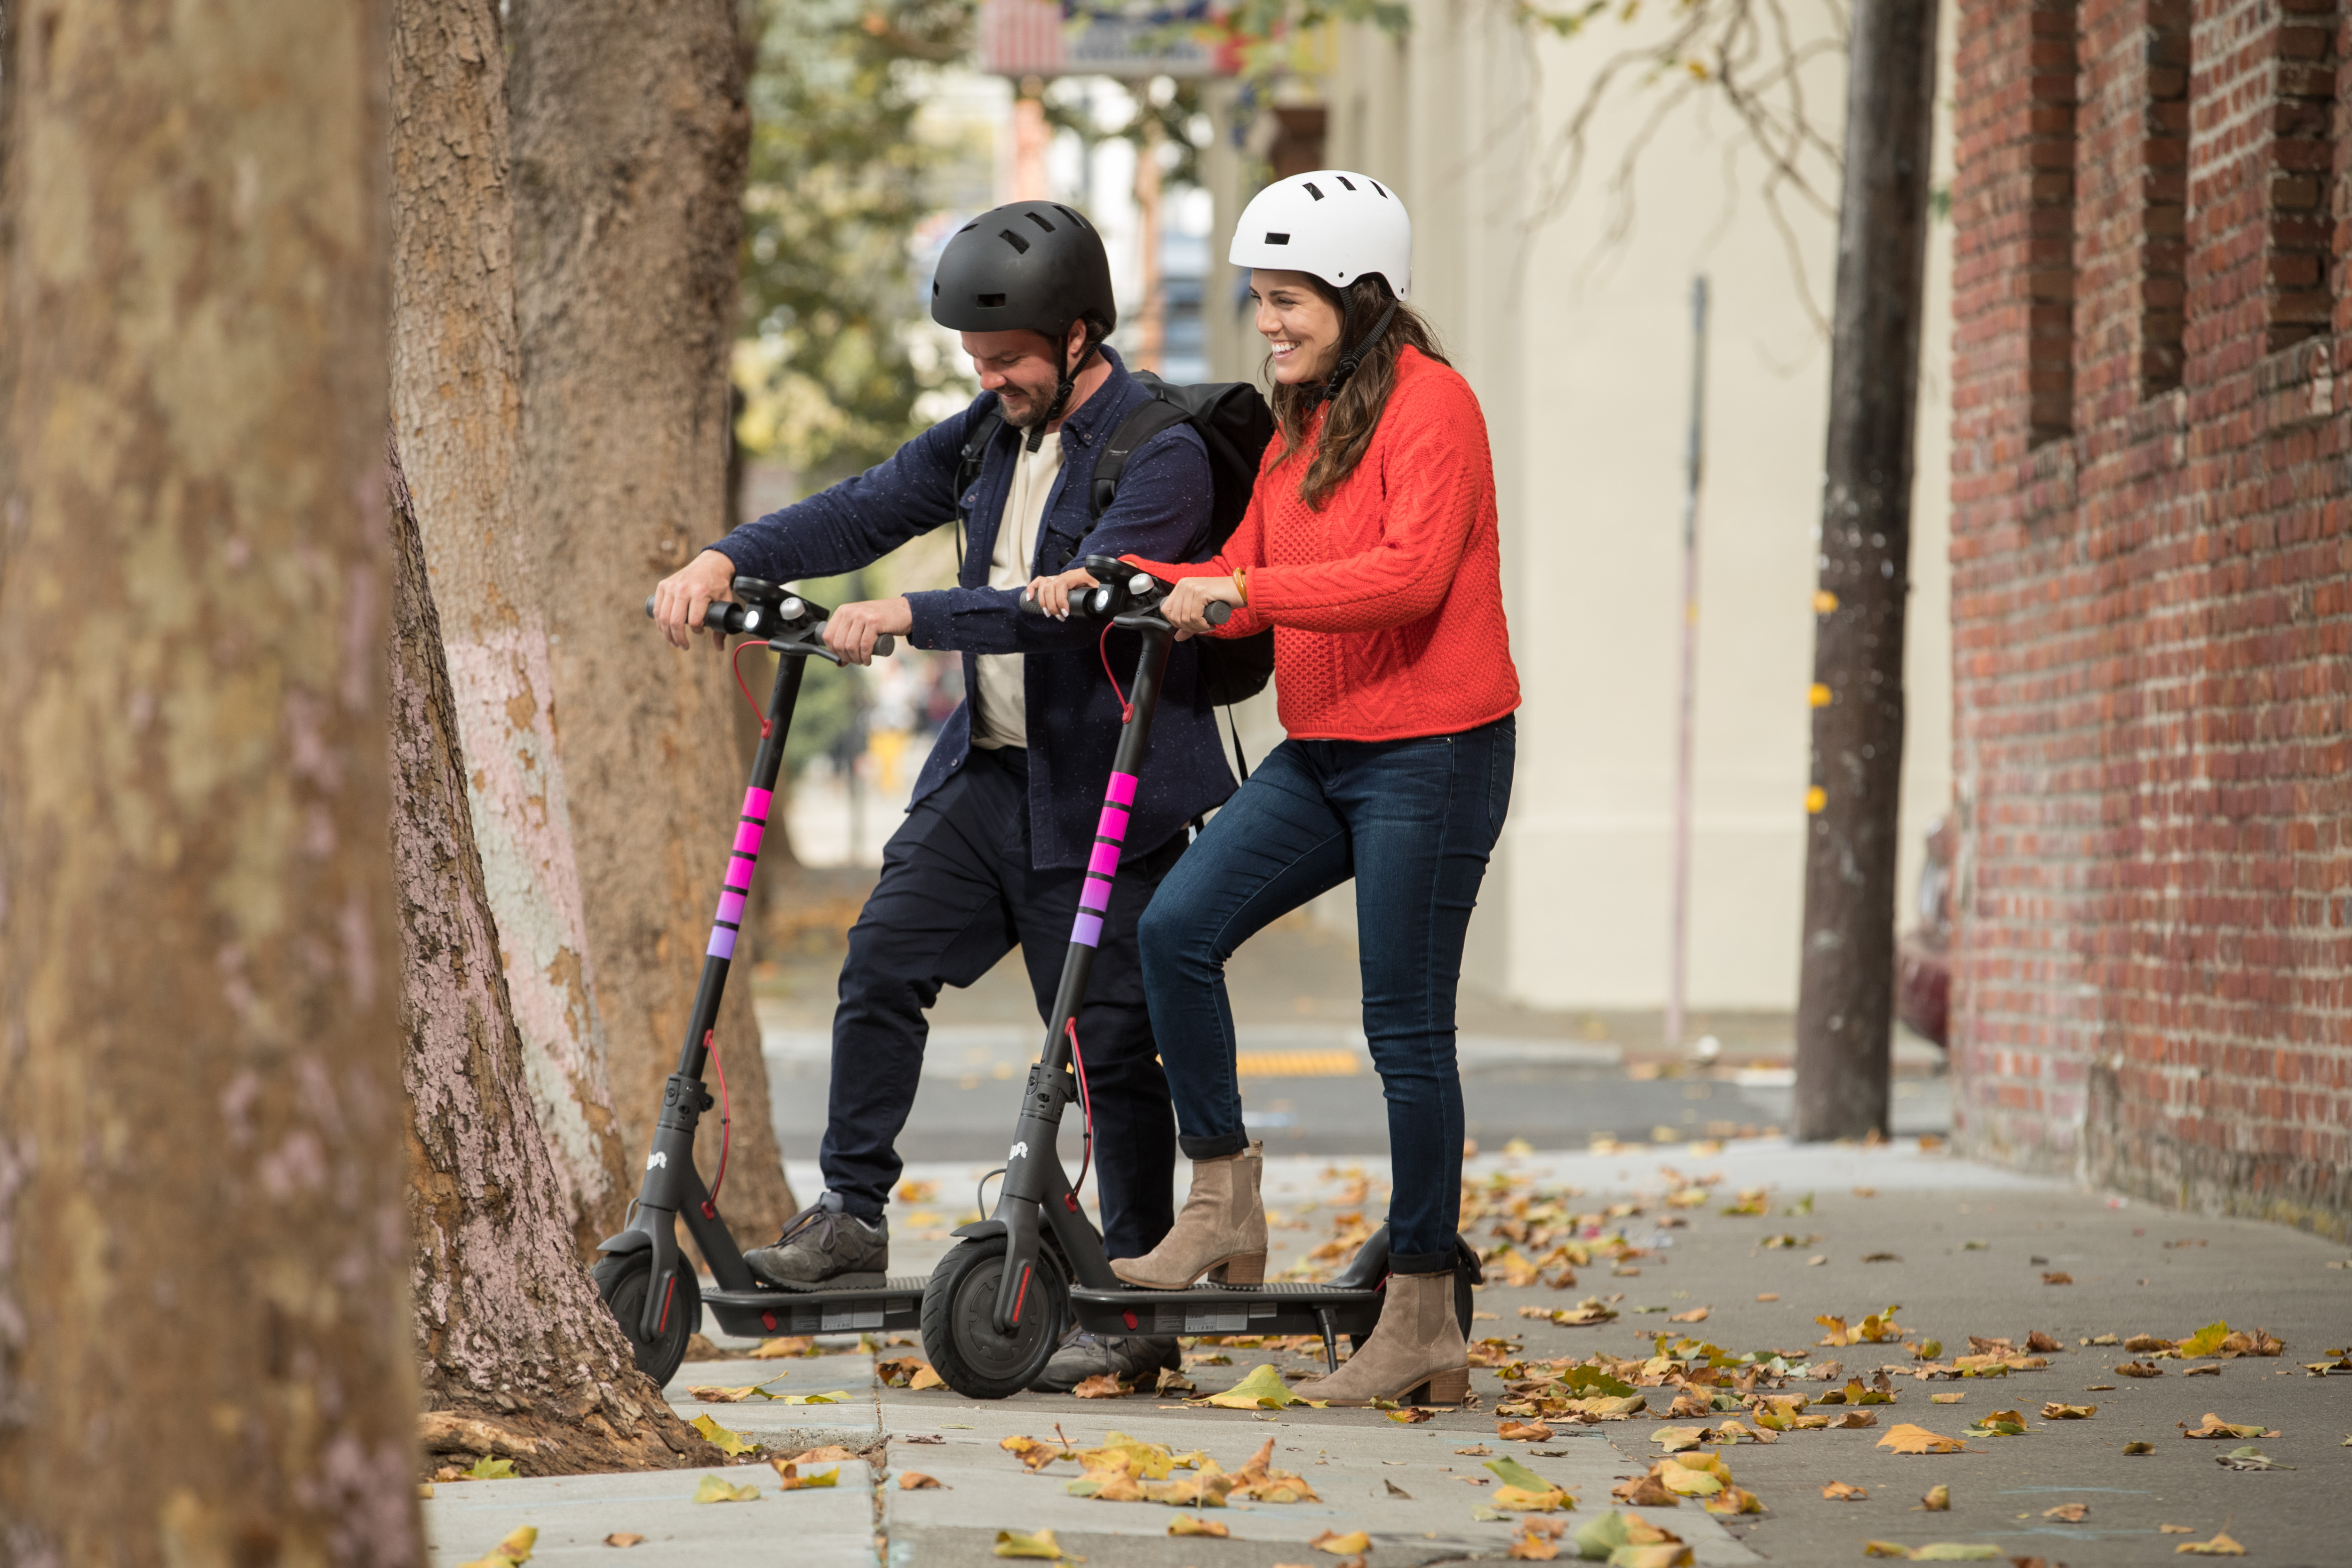 Lyft competitor Uber invested in scooter company Lime earlier this year, and Uber also owns dockless bike company Jump, which launched scooters in Santa Monica earlier this month. (Image: Courtesy Lyft)